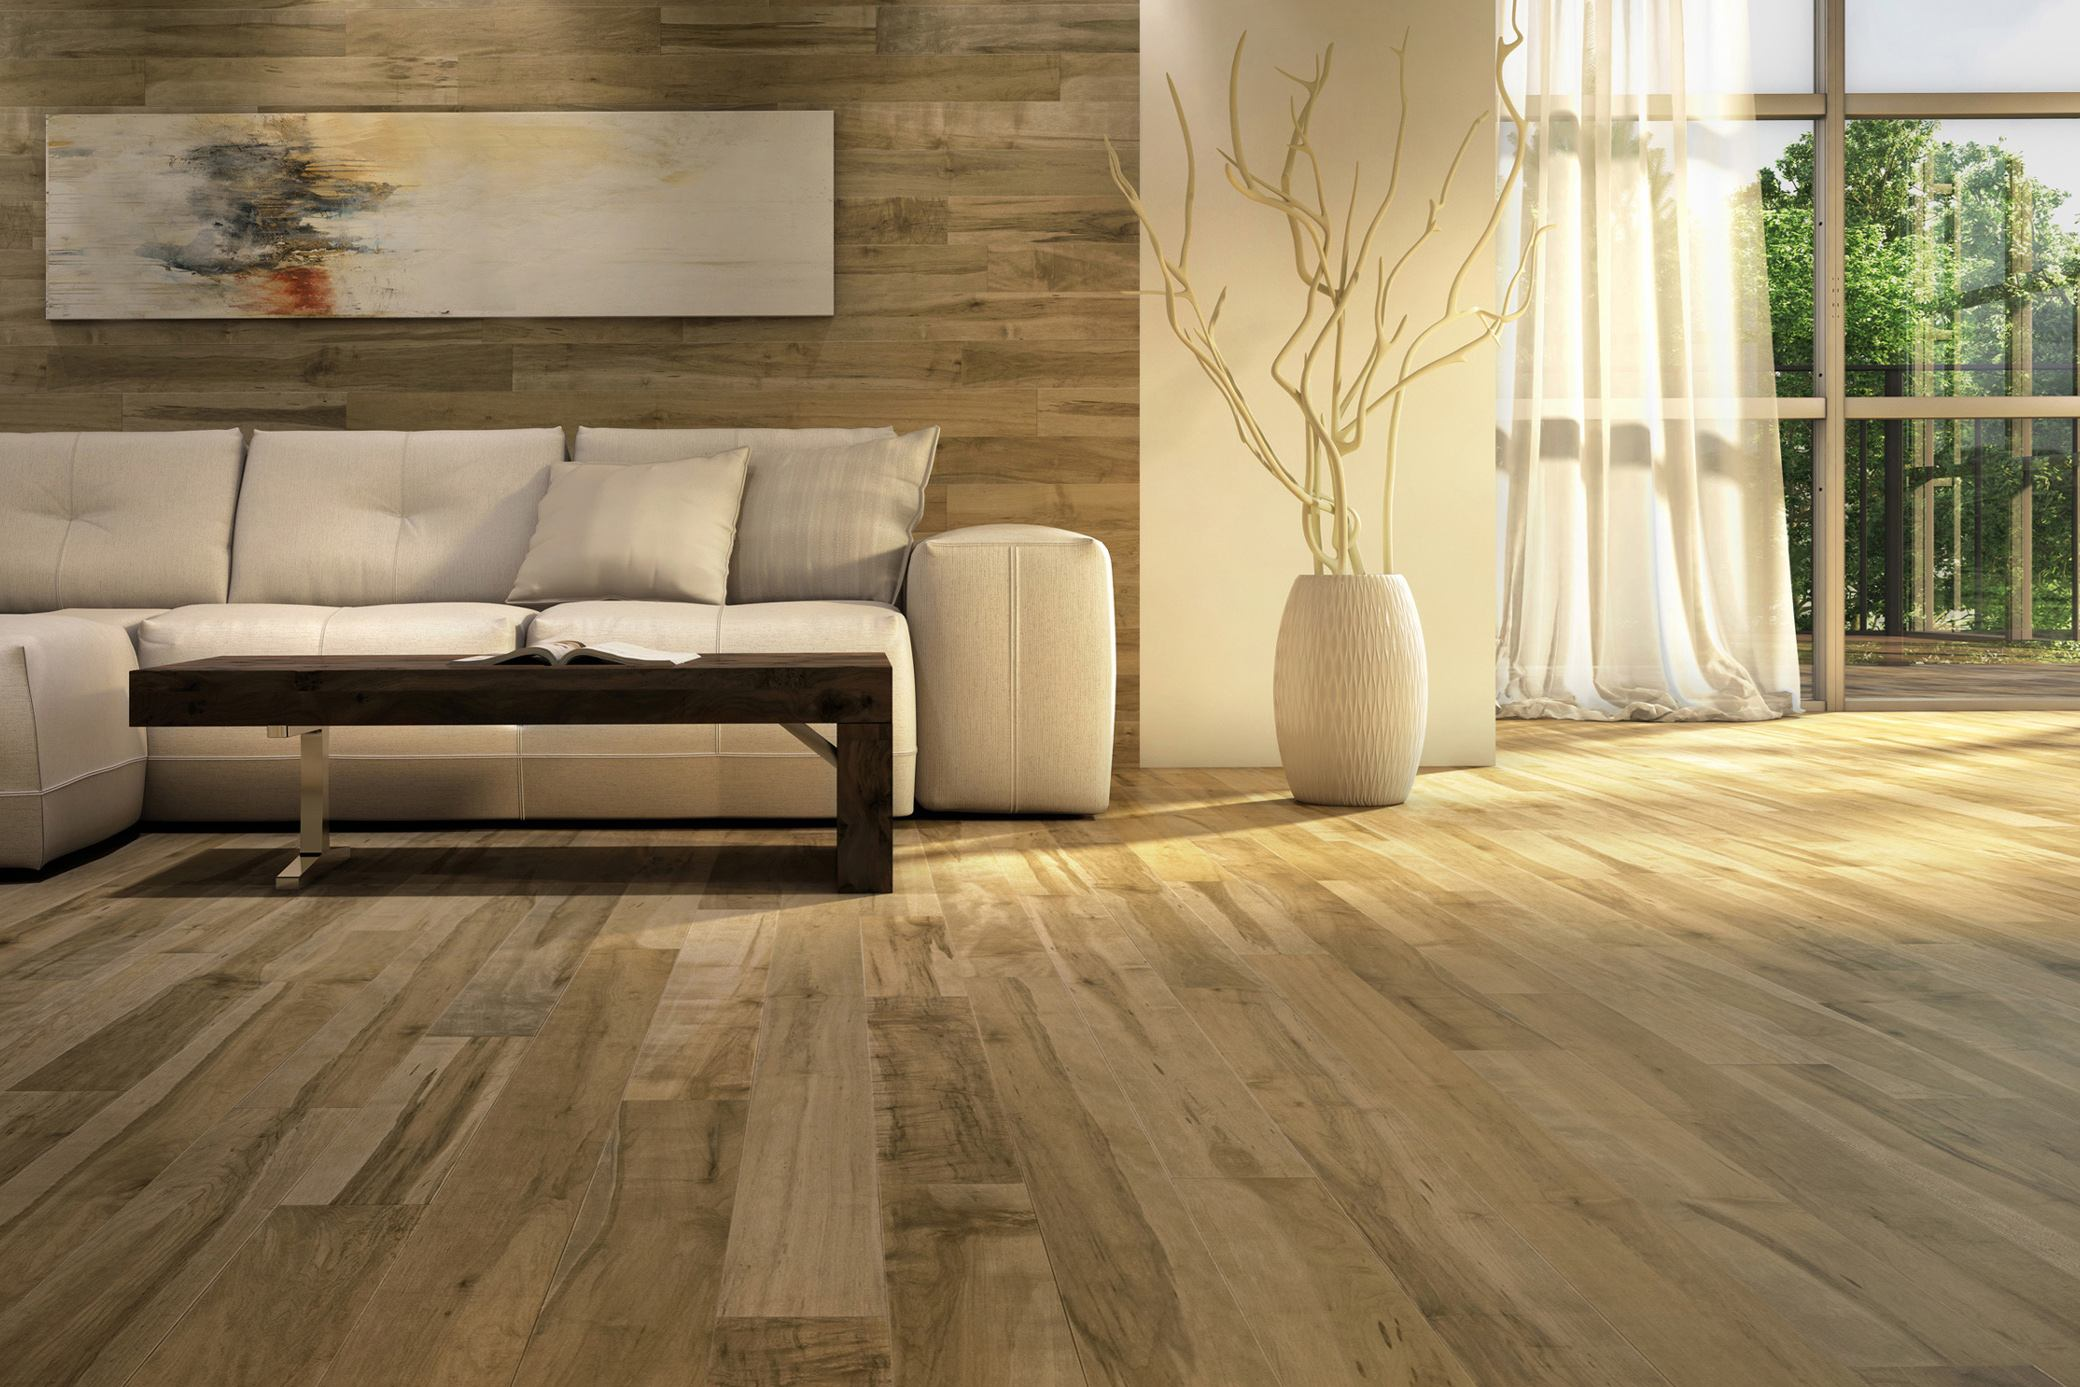 New Line Of Hardwood Flooring Improves Indoor Air Quality